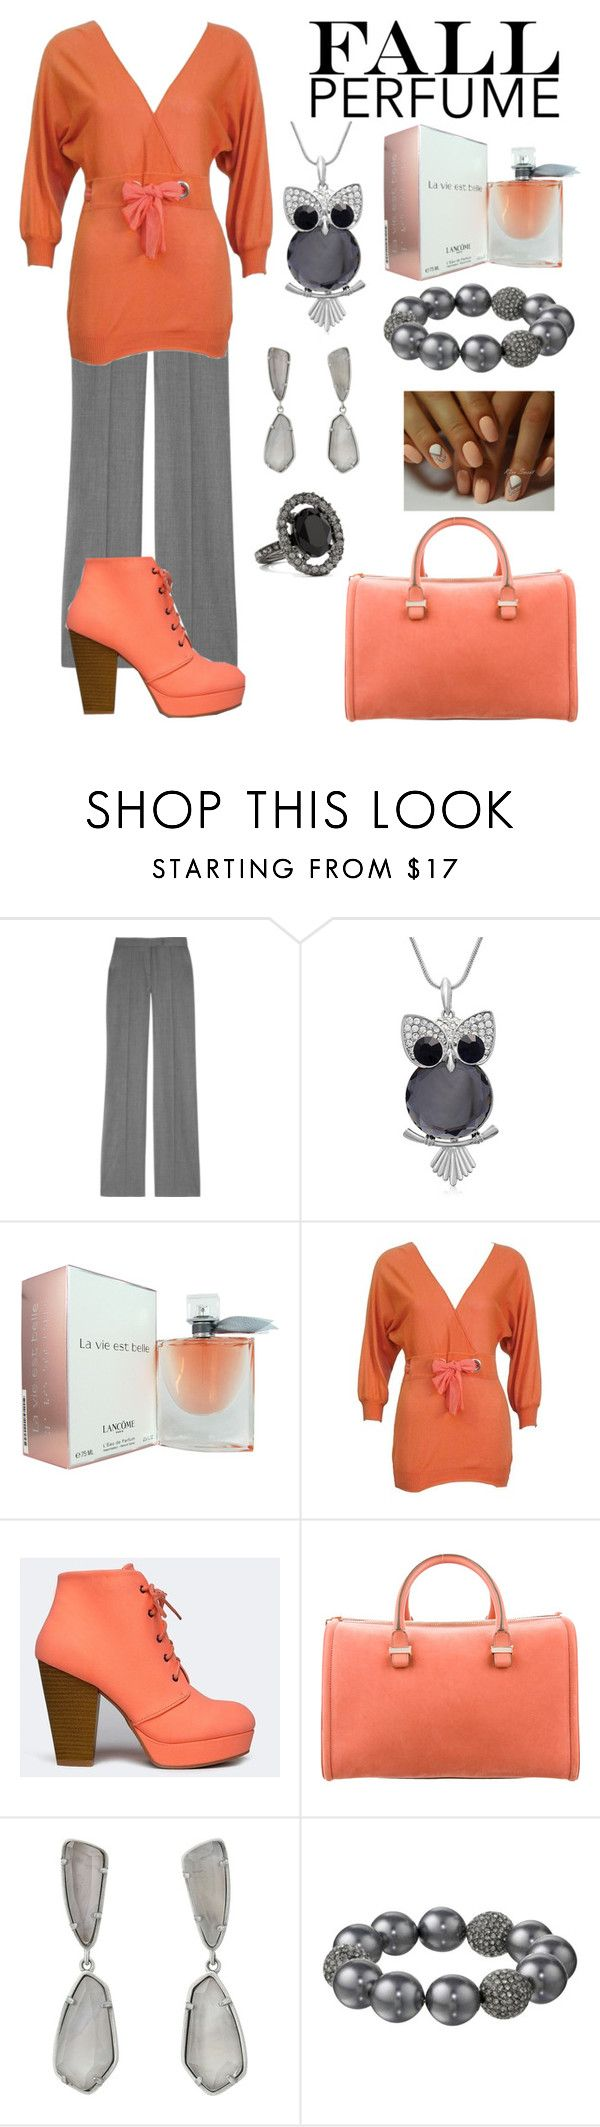 """Fall Perfume:  Gray and Peach"" by tammy-gardner ❤ liked on Polyvore featuring beauty, STELLA McCARTNEY, Lancôme, Chloé, Qupid, Victoria Beckham, Kendra Scott, Kenneth Jay Lane, Oscar de la Renta and fallperfume"